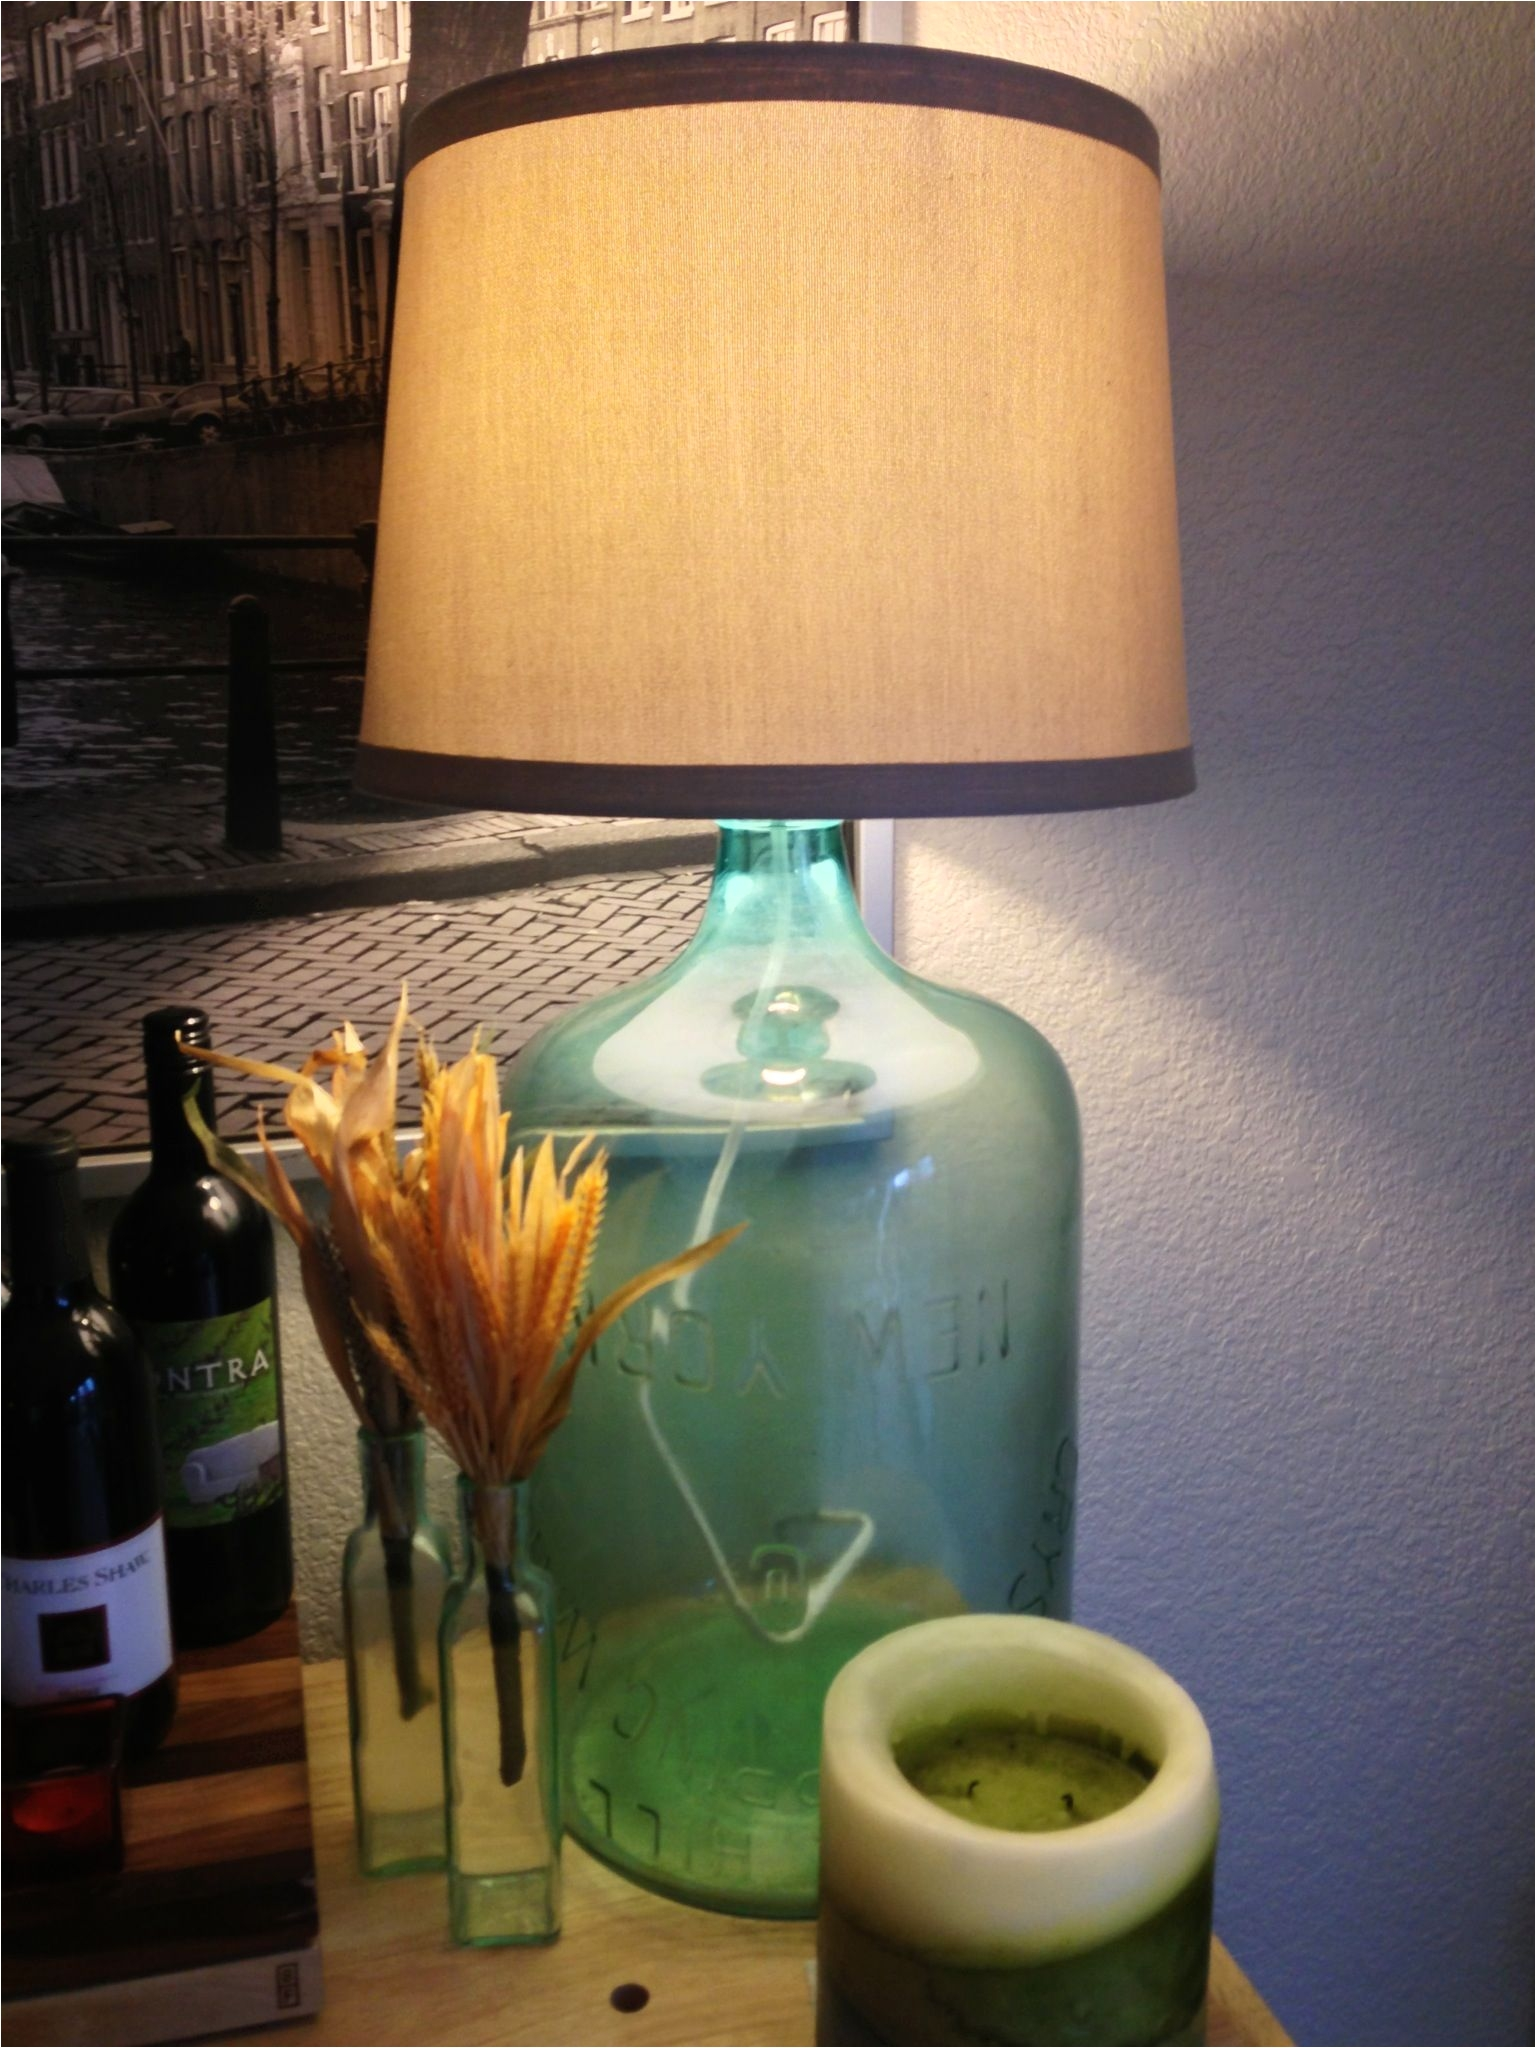 Pottery Barn Lighting Sale My Diy Pottery Barn Bottle Lamp 1883 Bottle for 10 On Craigslist